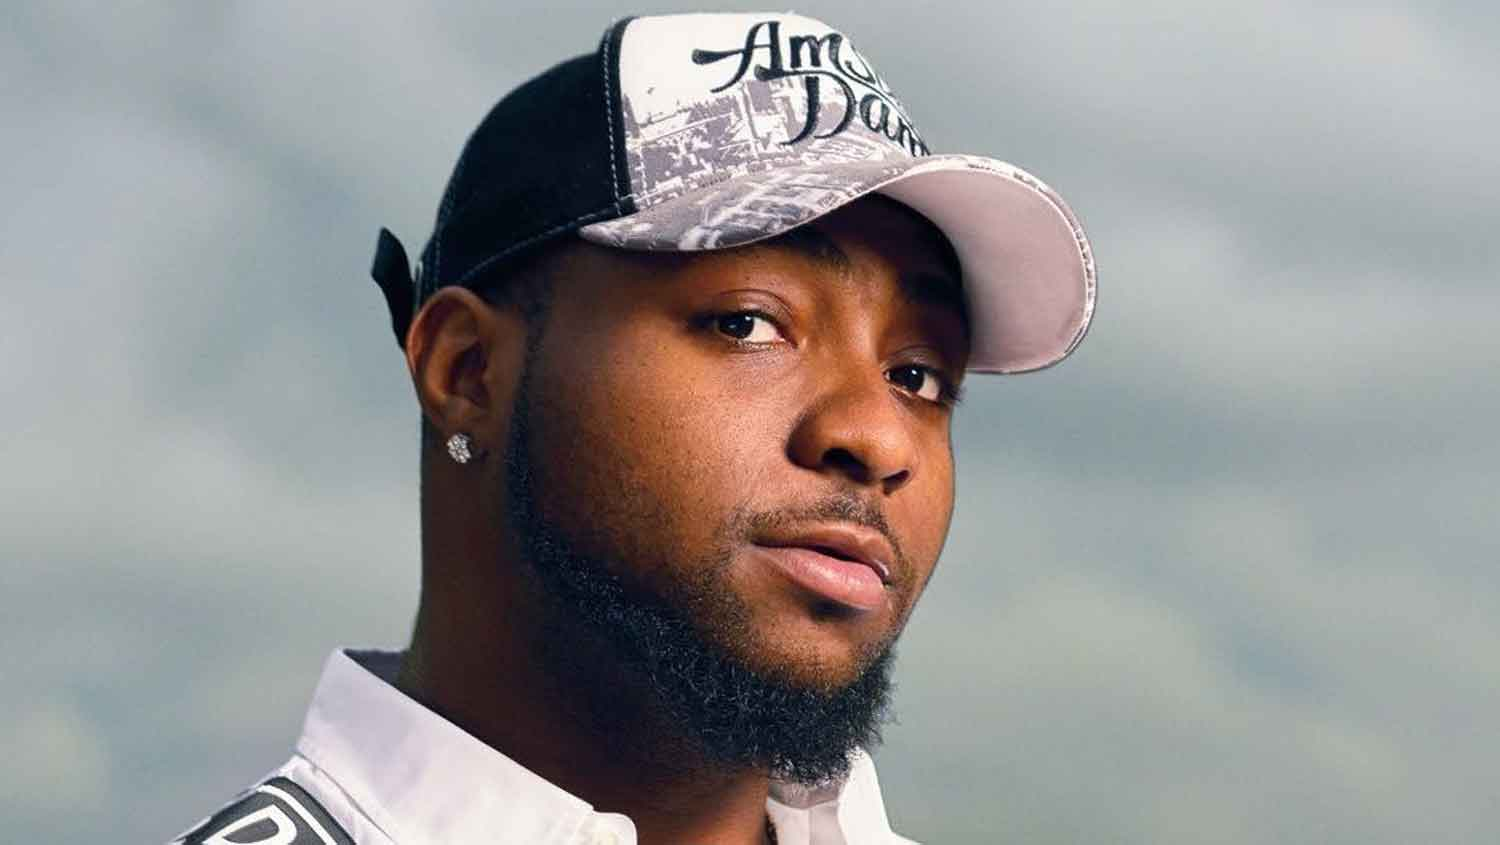 Davido says he will quit music after fight with Burna Boy